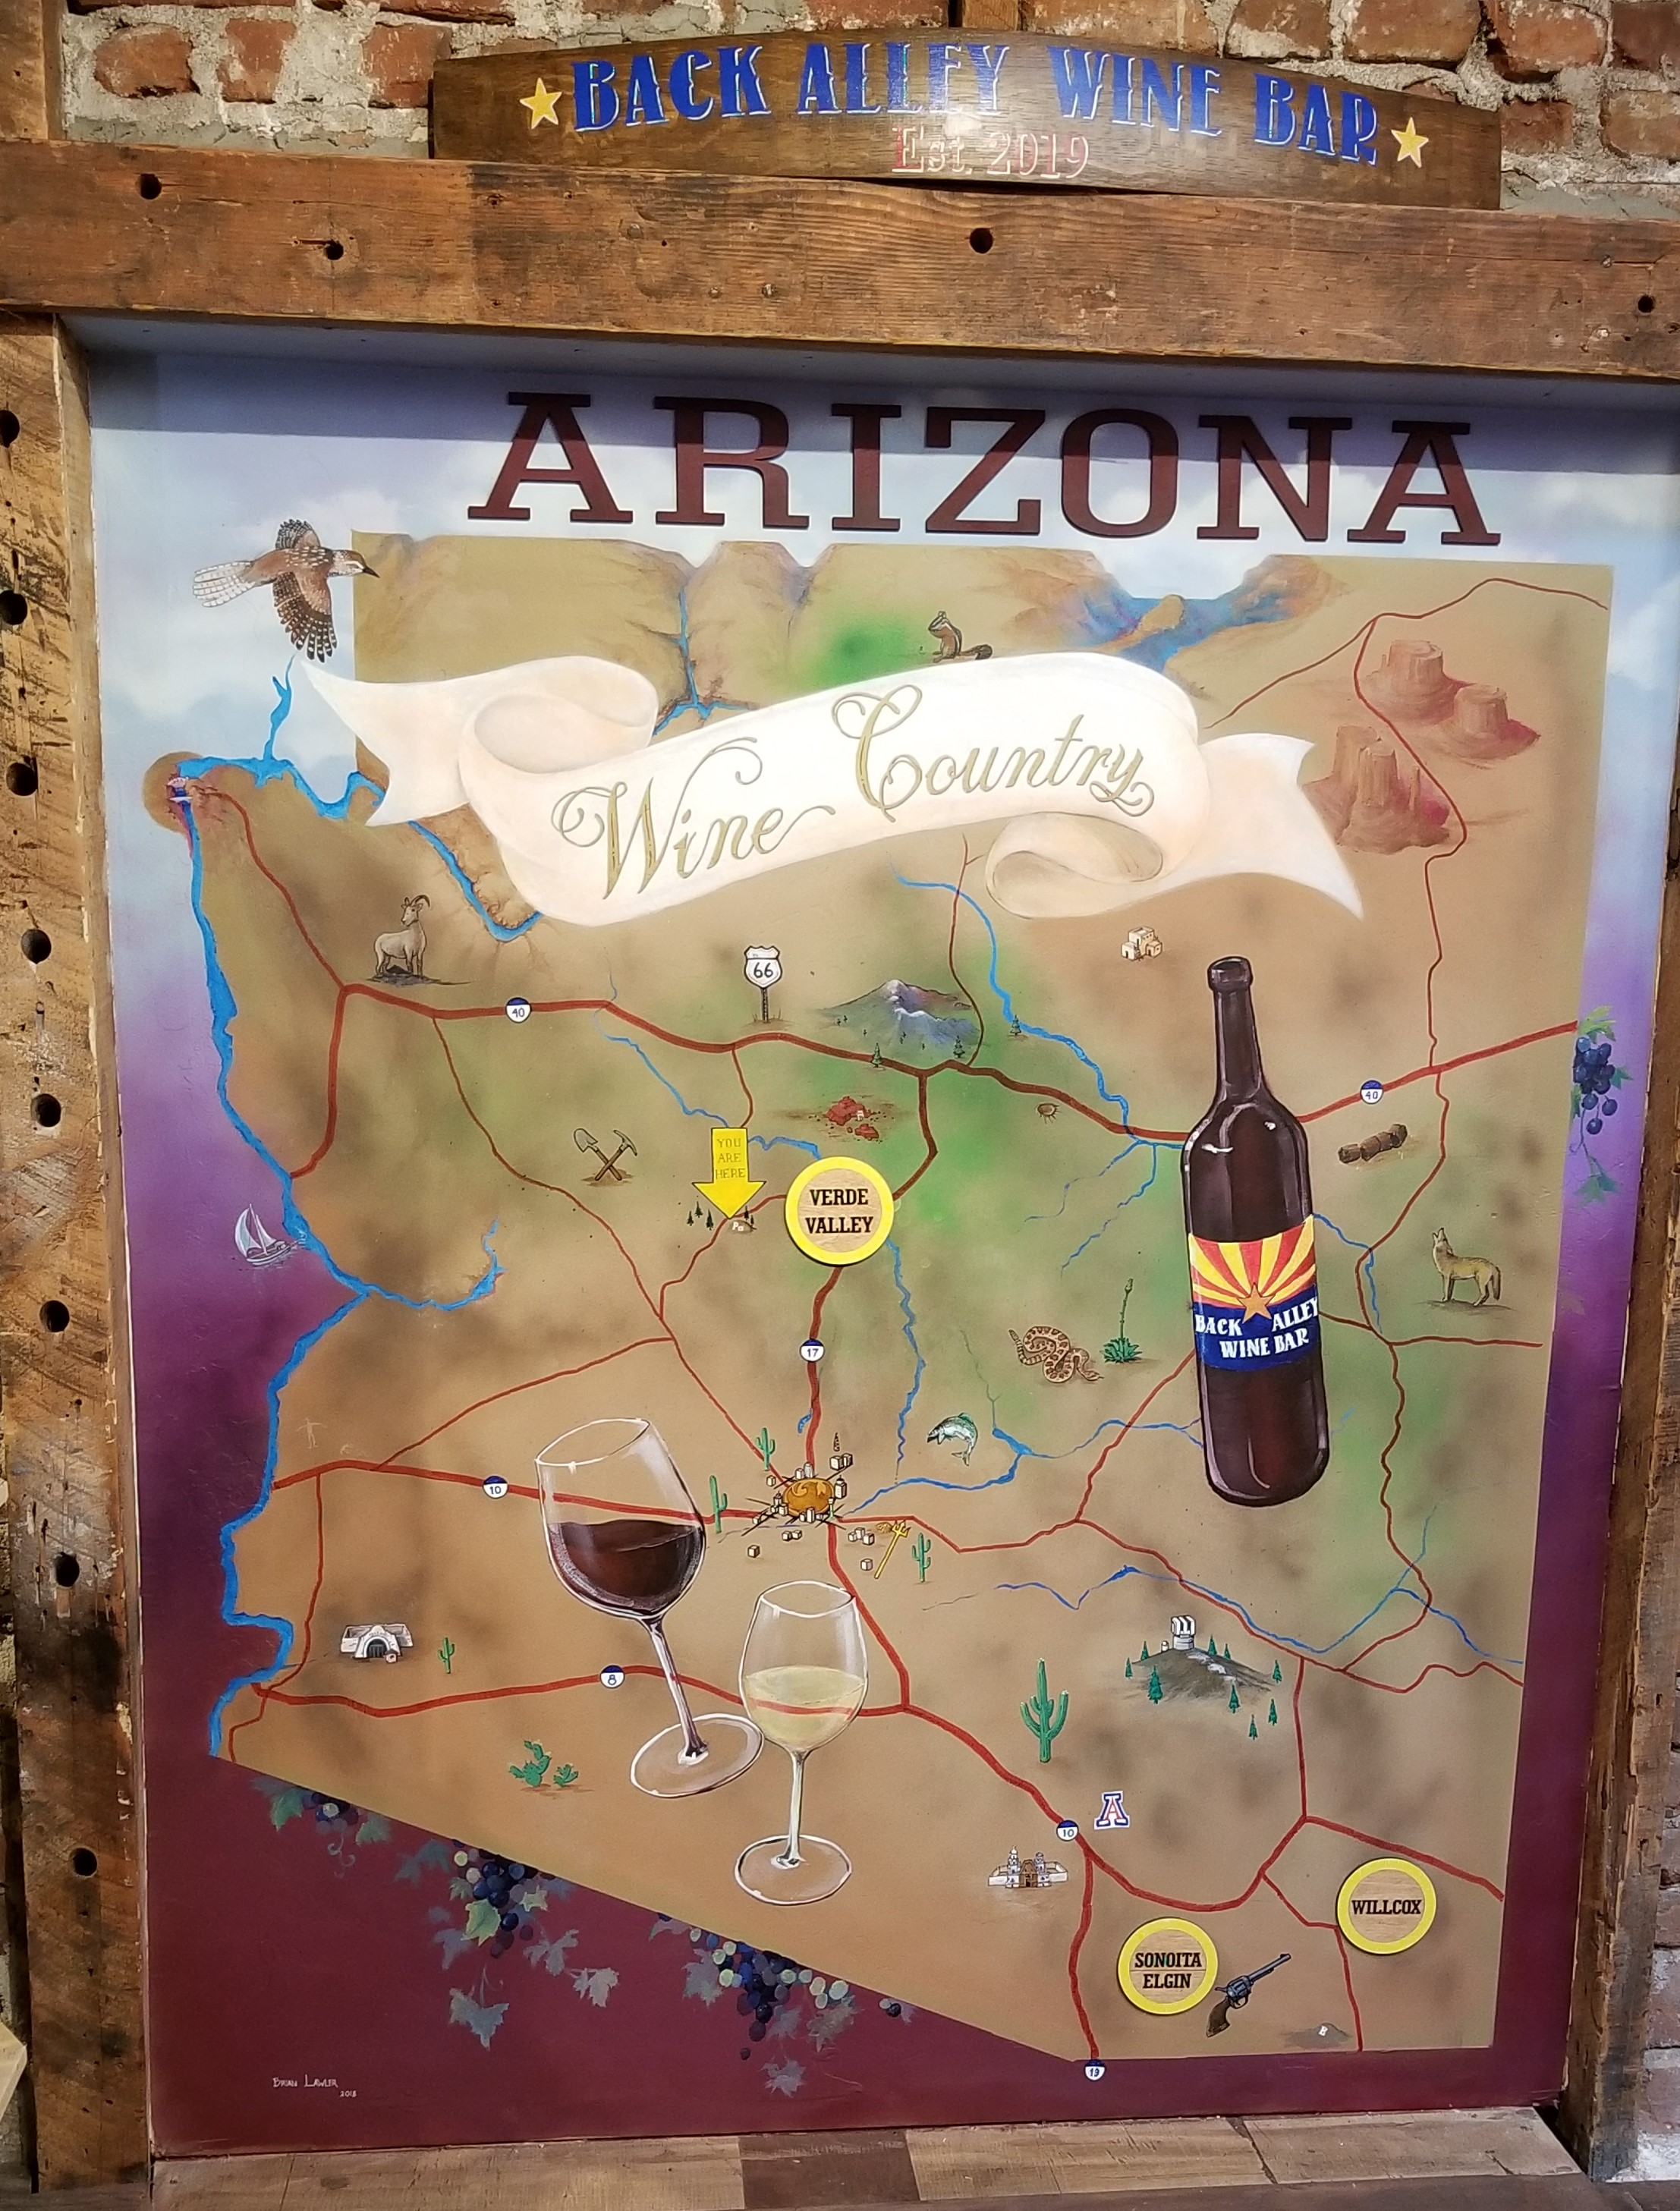 Arizona wine region map